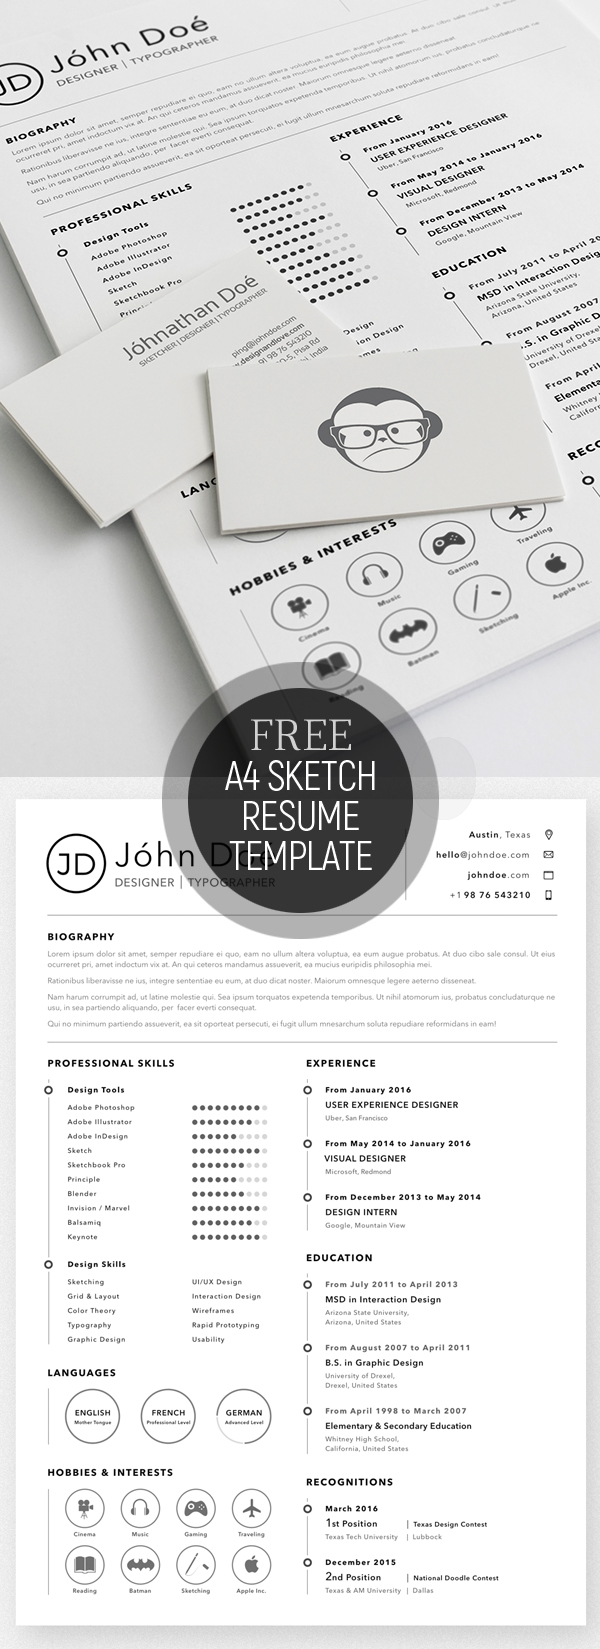 50 Free Resume Templates: Best Of 2018 -  47